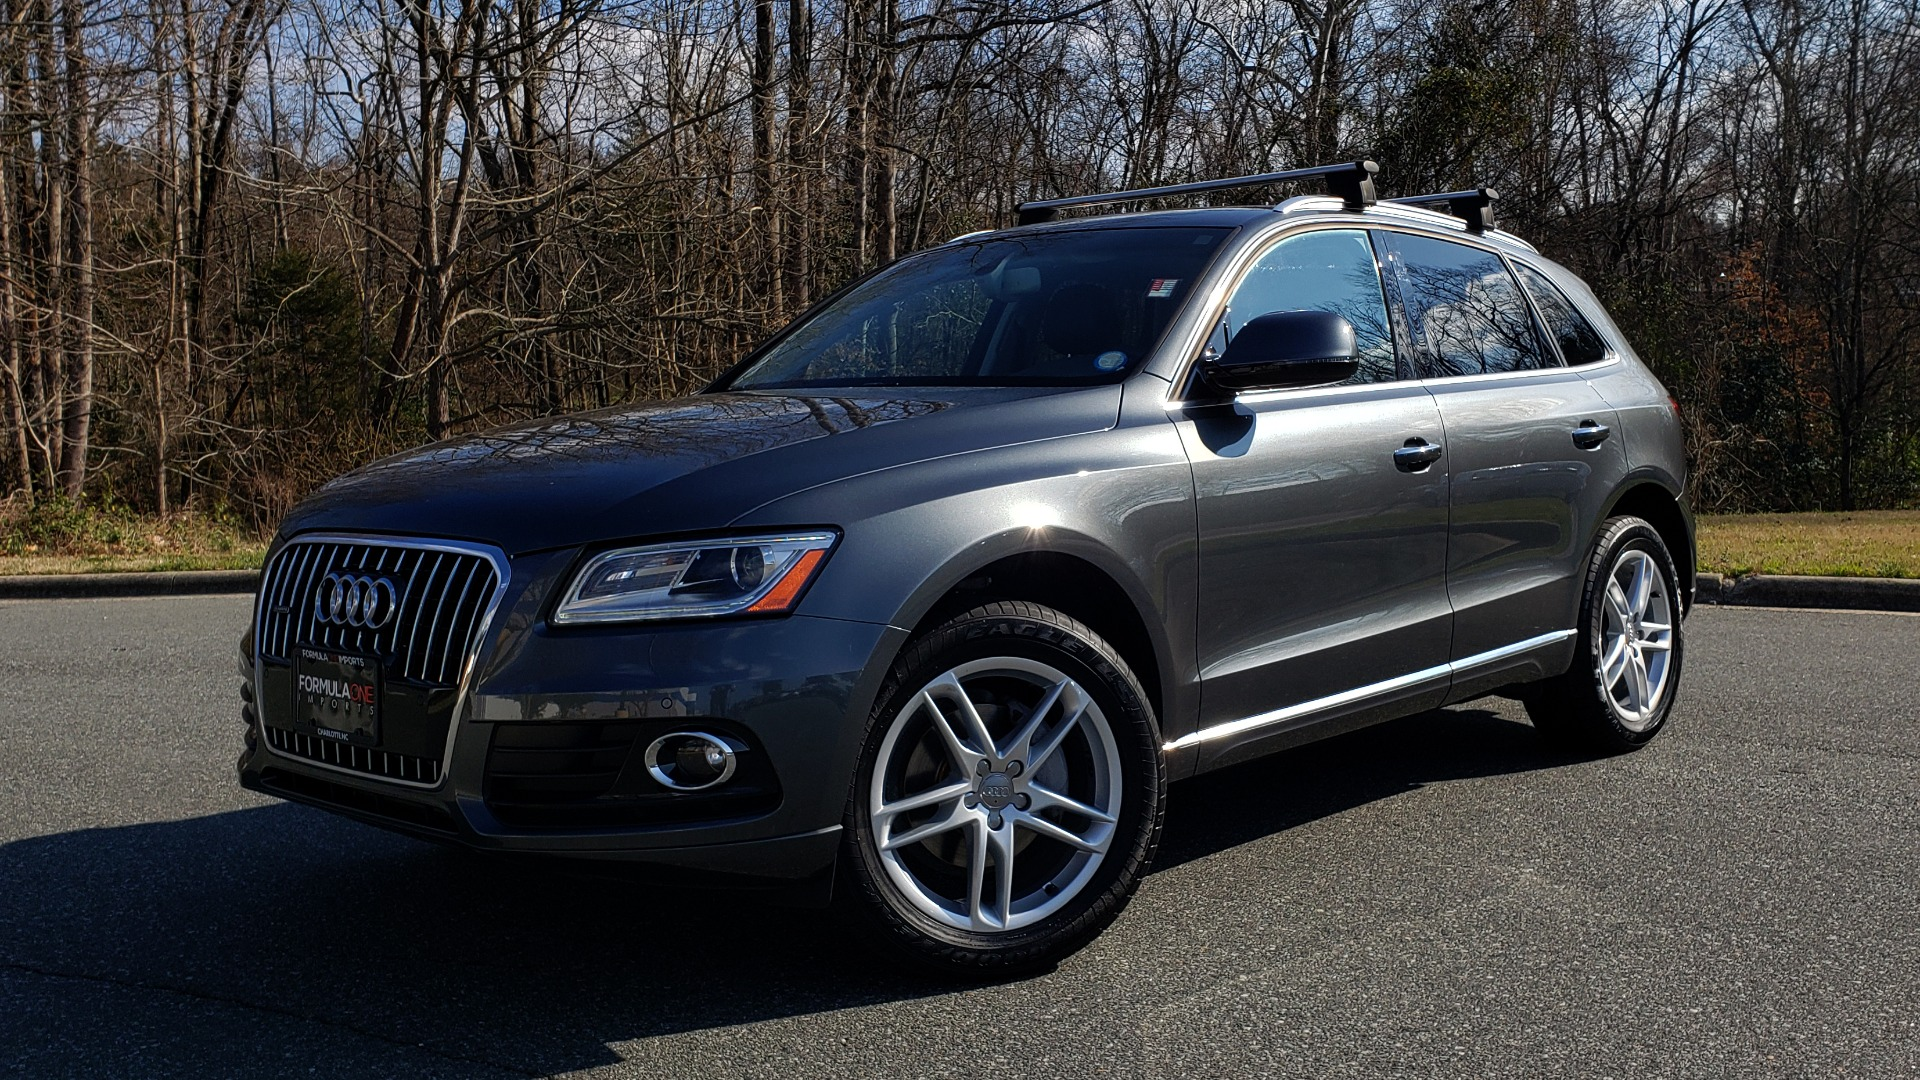 Used 2017 Audi Q5 PREMIUM PLUS / TECH / NAV / PANO / REARVIEW / B&O SND for sale Sold at Formula Imports in Charlotte NC 28227 1